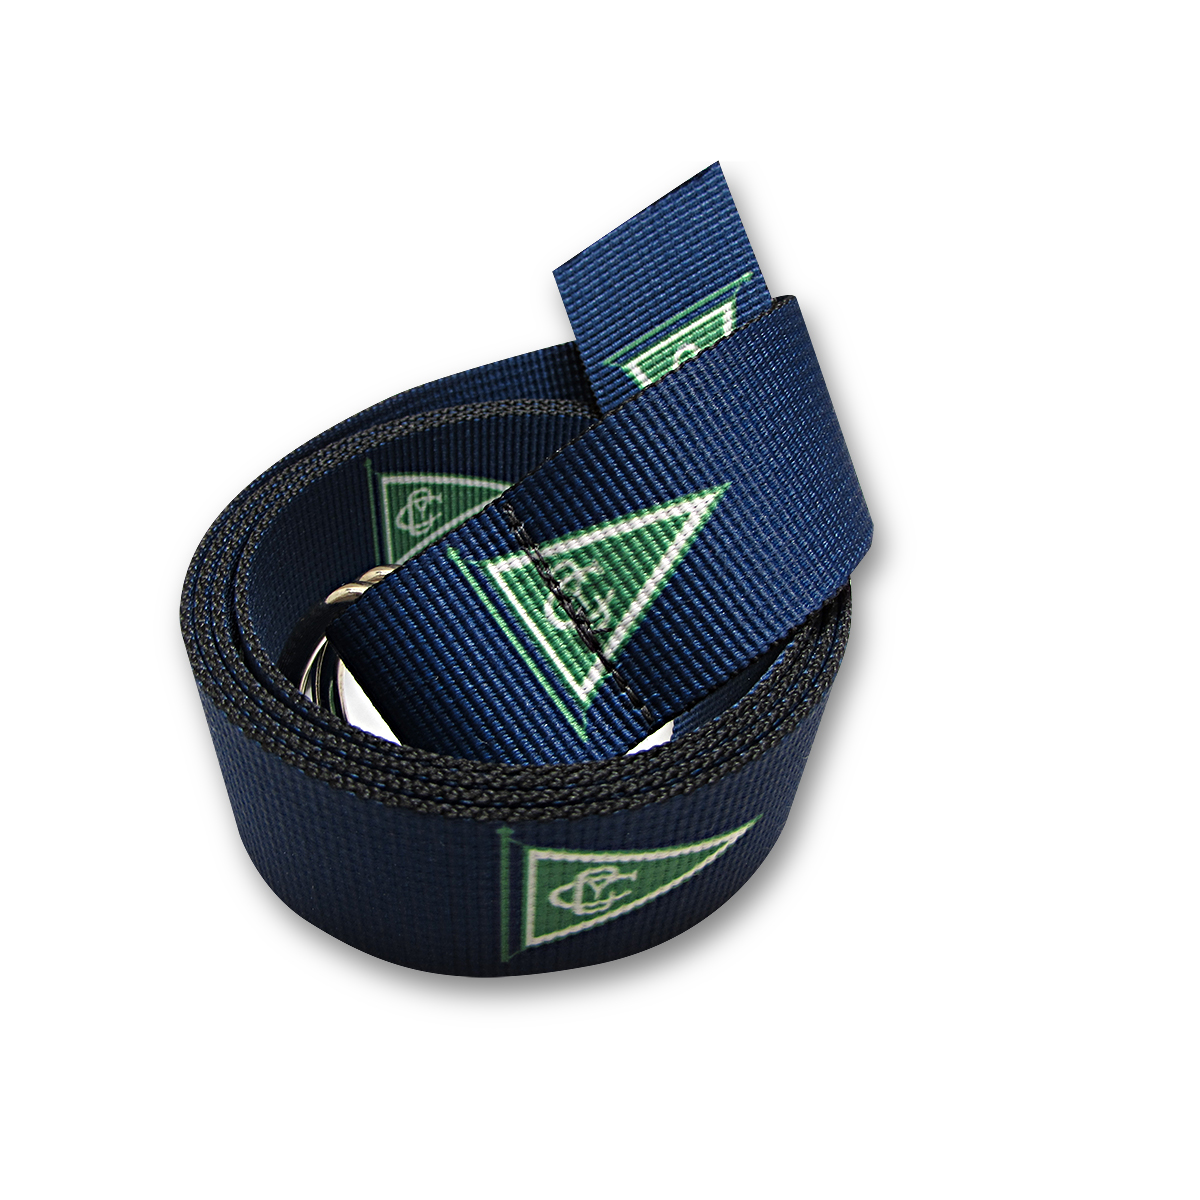 CHATHAM YACHT CLUB BELT